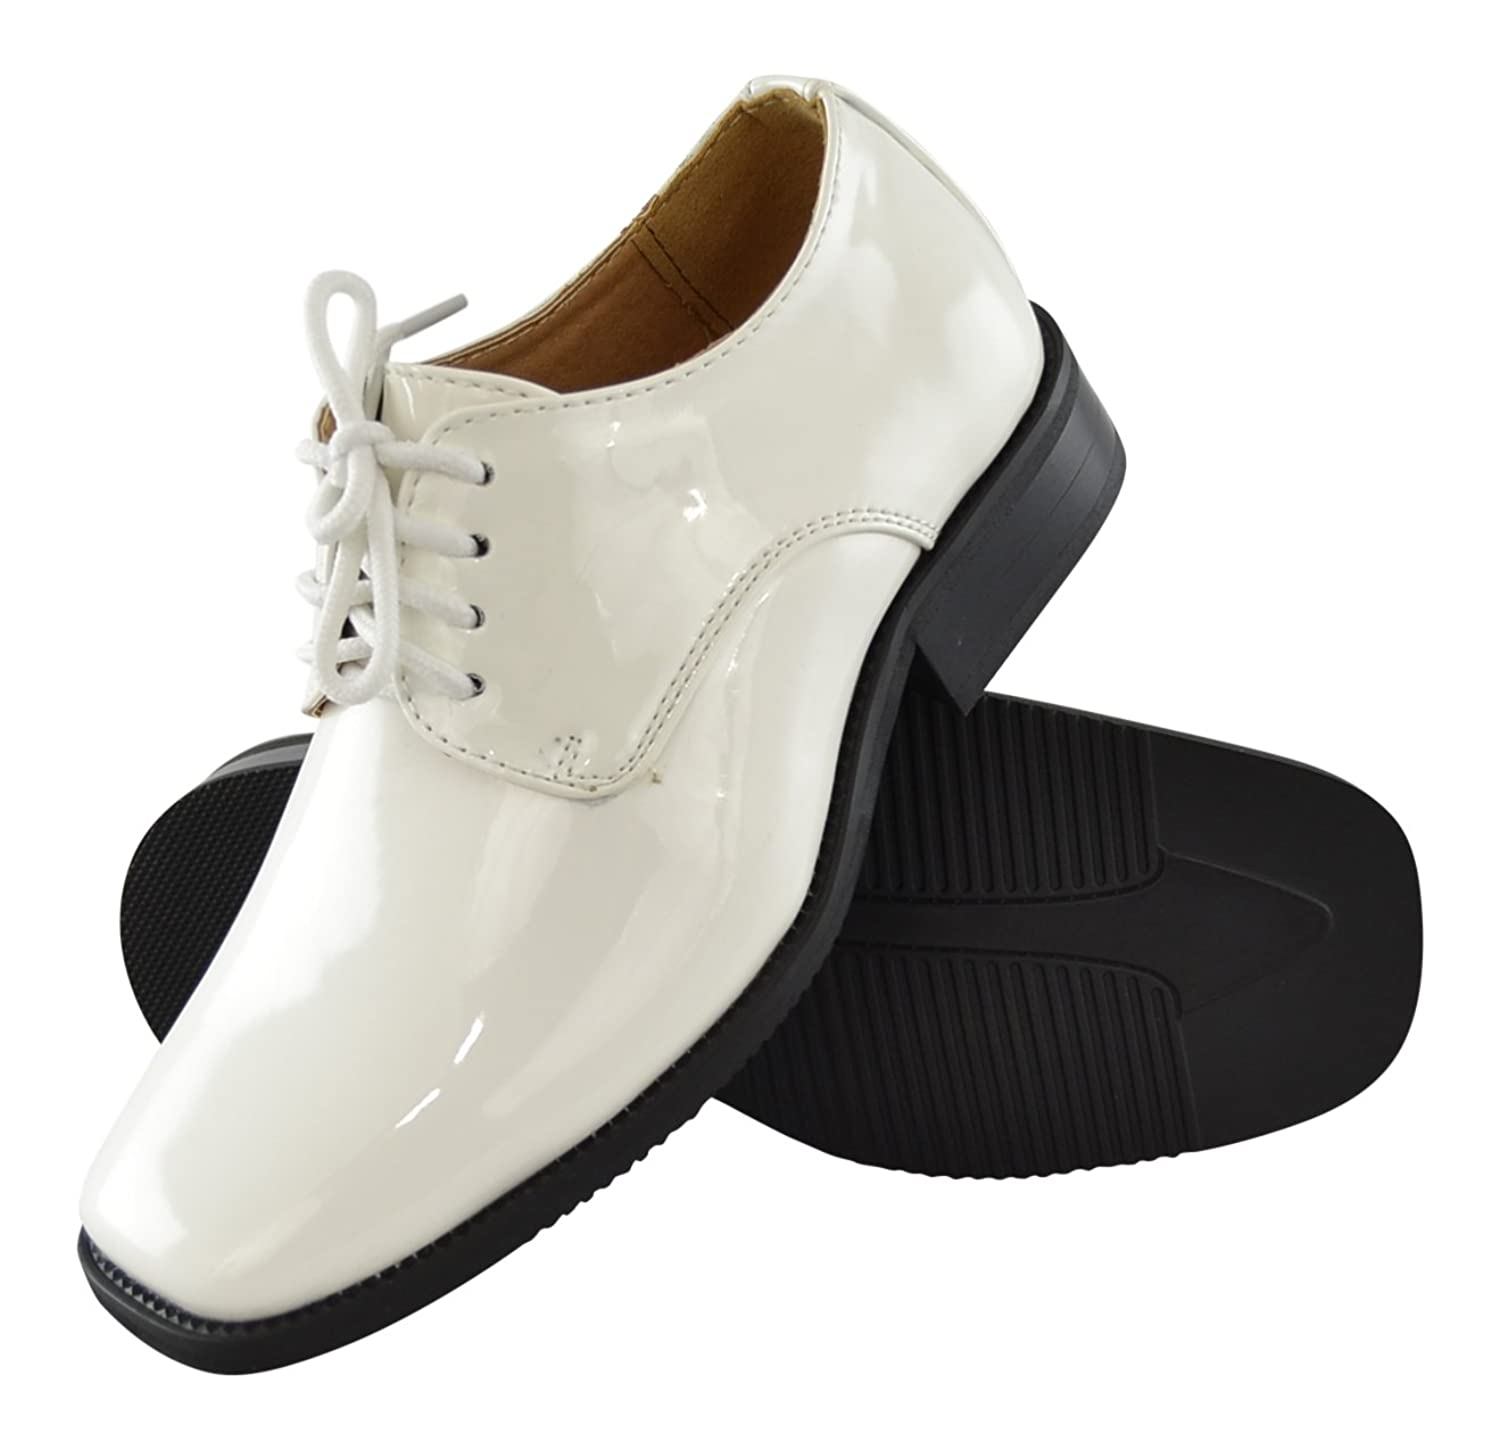 White youth dress shoes